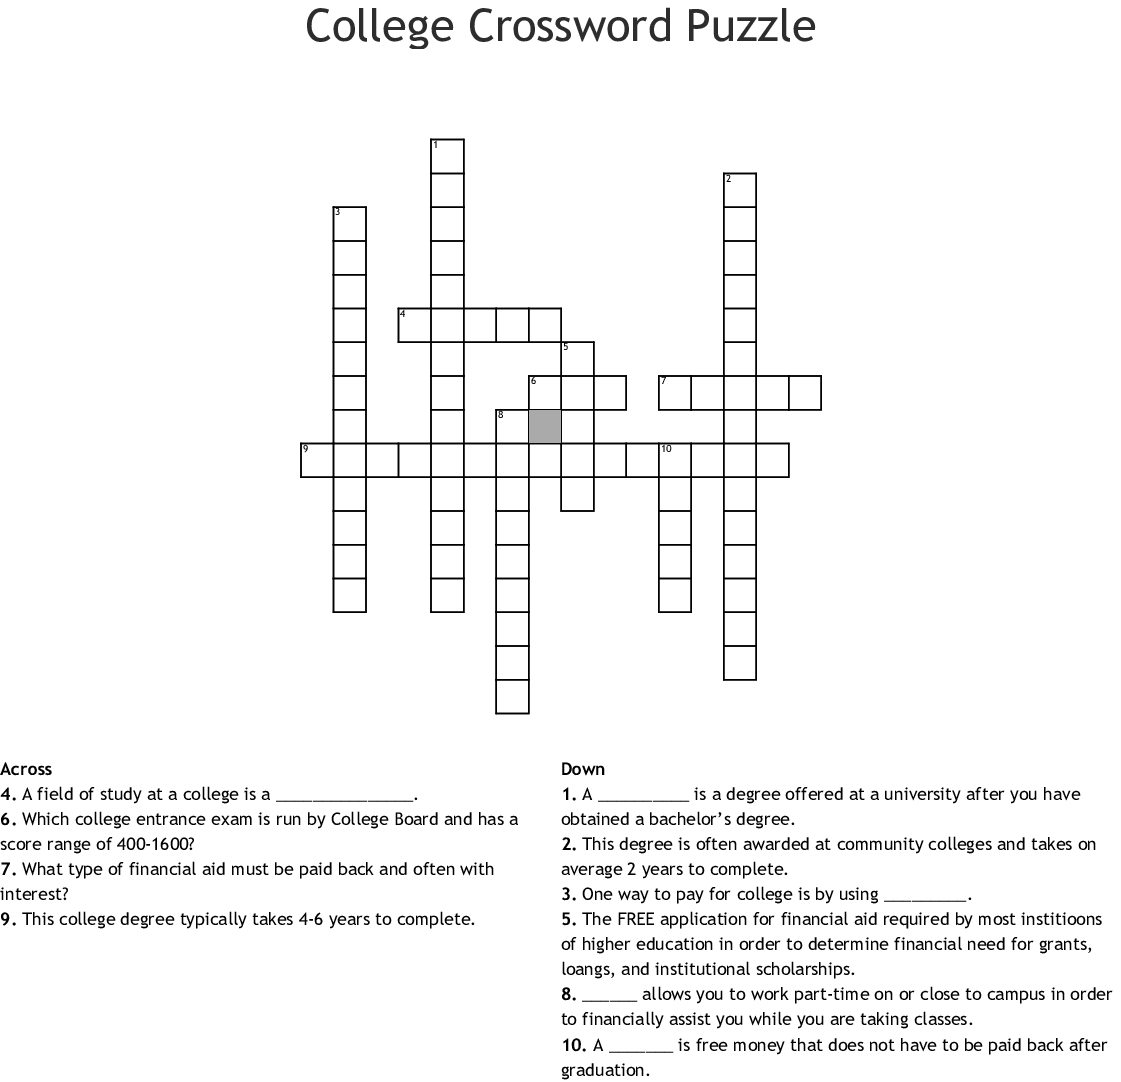 College Crossword Puzzle Crossword - Wordmint - College Crossword Puzzle Printable